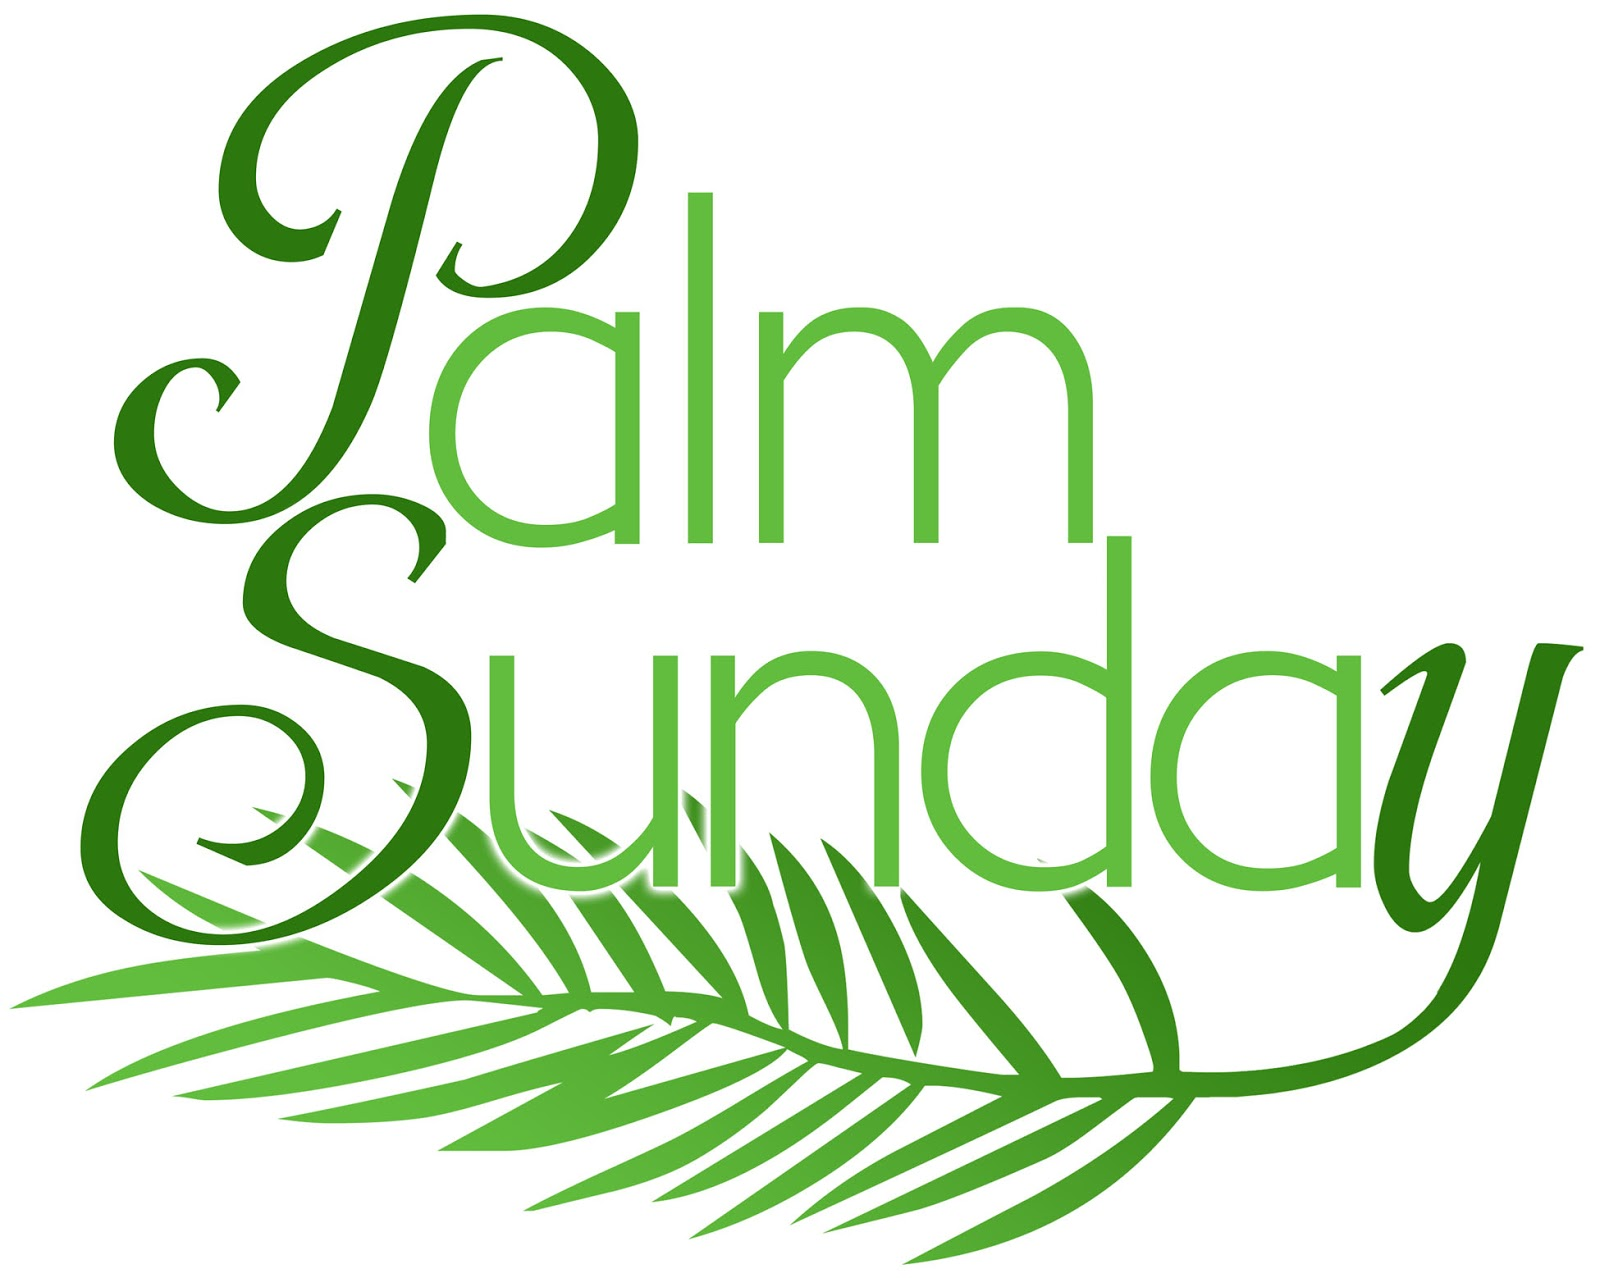 Christian Clipart For Palm Sunday.